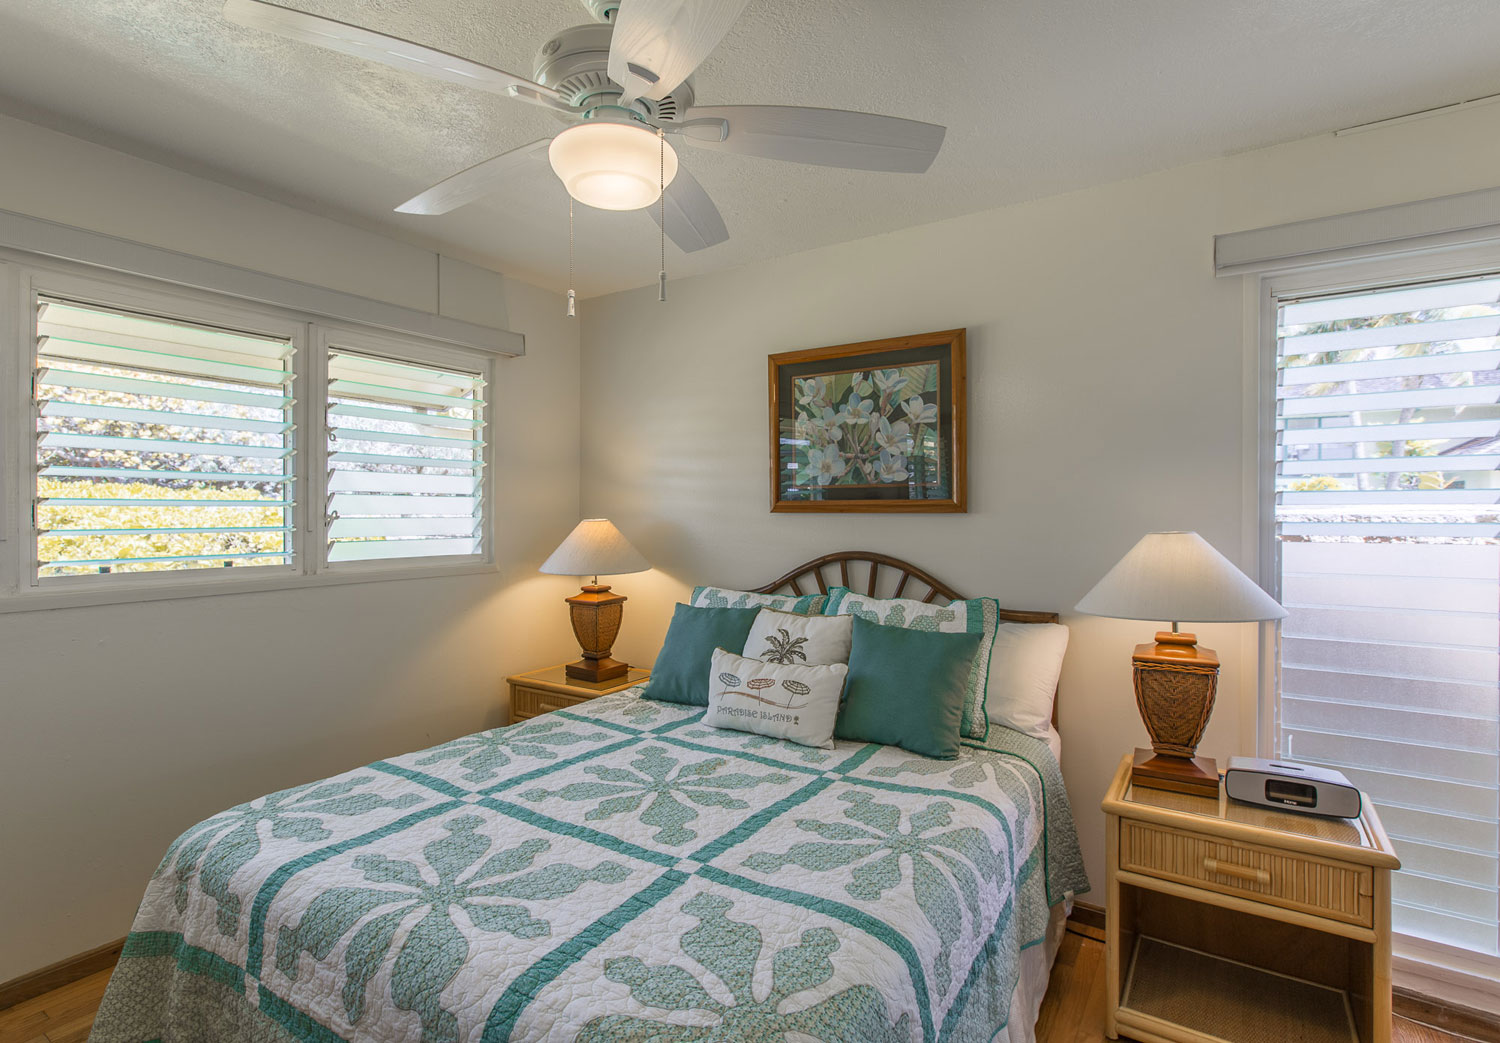 2nd Bedroom in Kailua Vacation Home